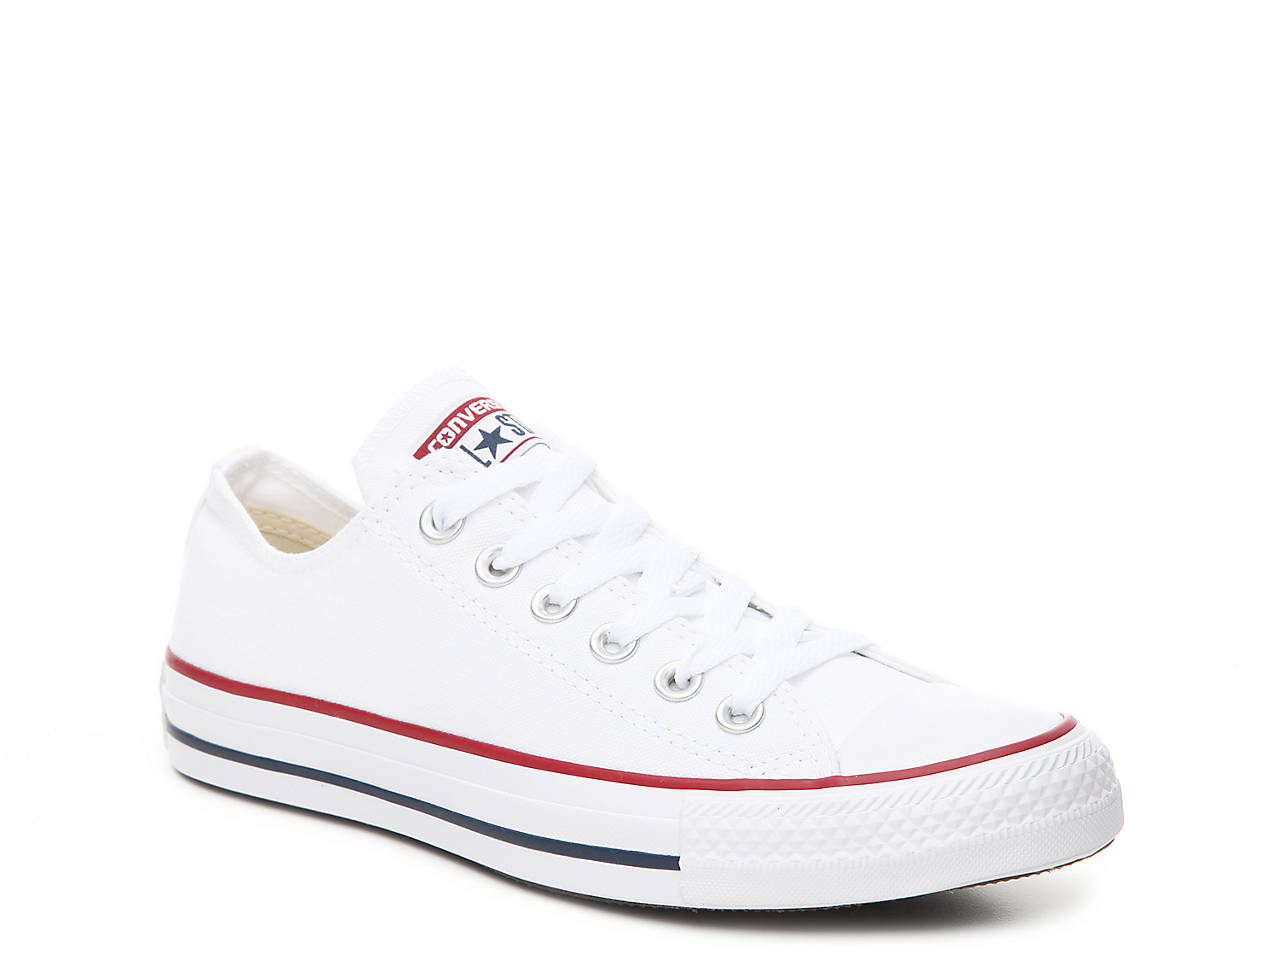 95222c5e80e1 Converse Chuck Taylor All Star Sneaker - Women s Women s Shoes